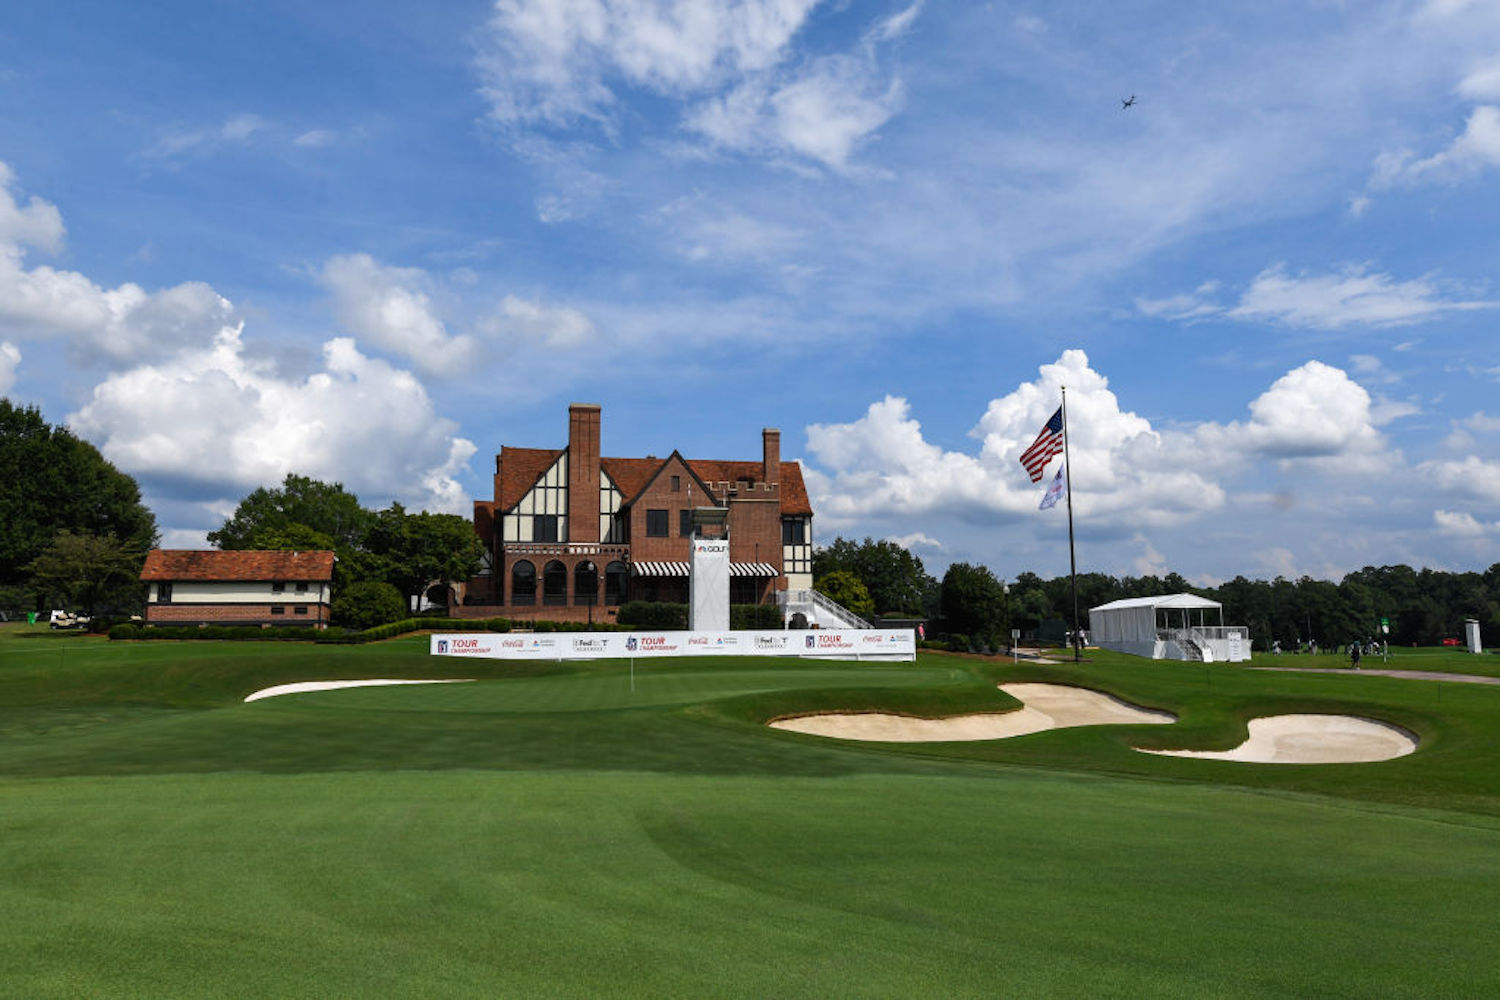 The PGA Tour season finale is here. Who are the favorites at the 2020 TOUR Championship and who will take home the $15 million prize?